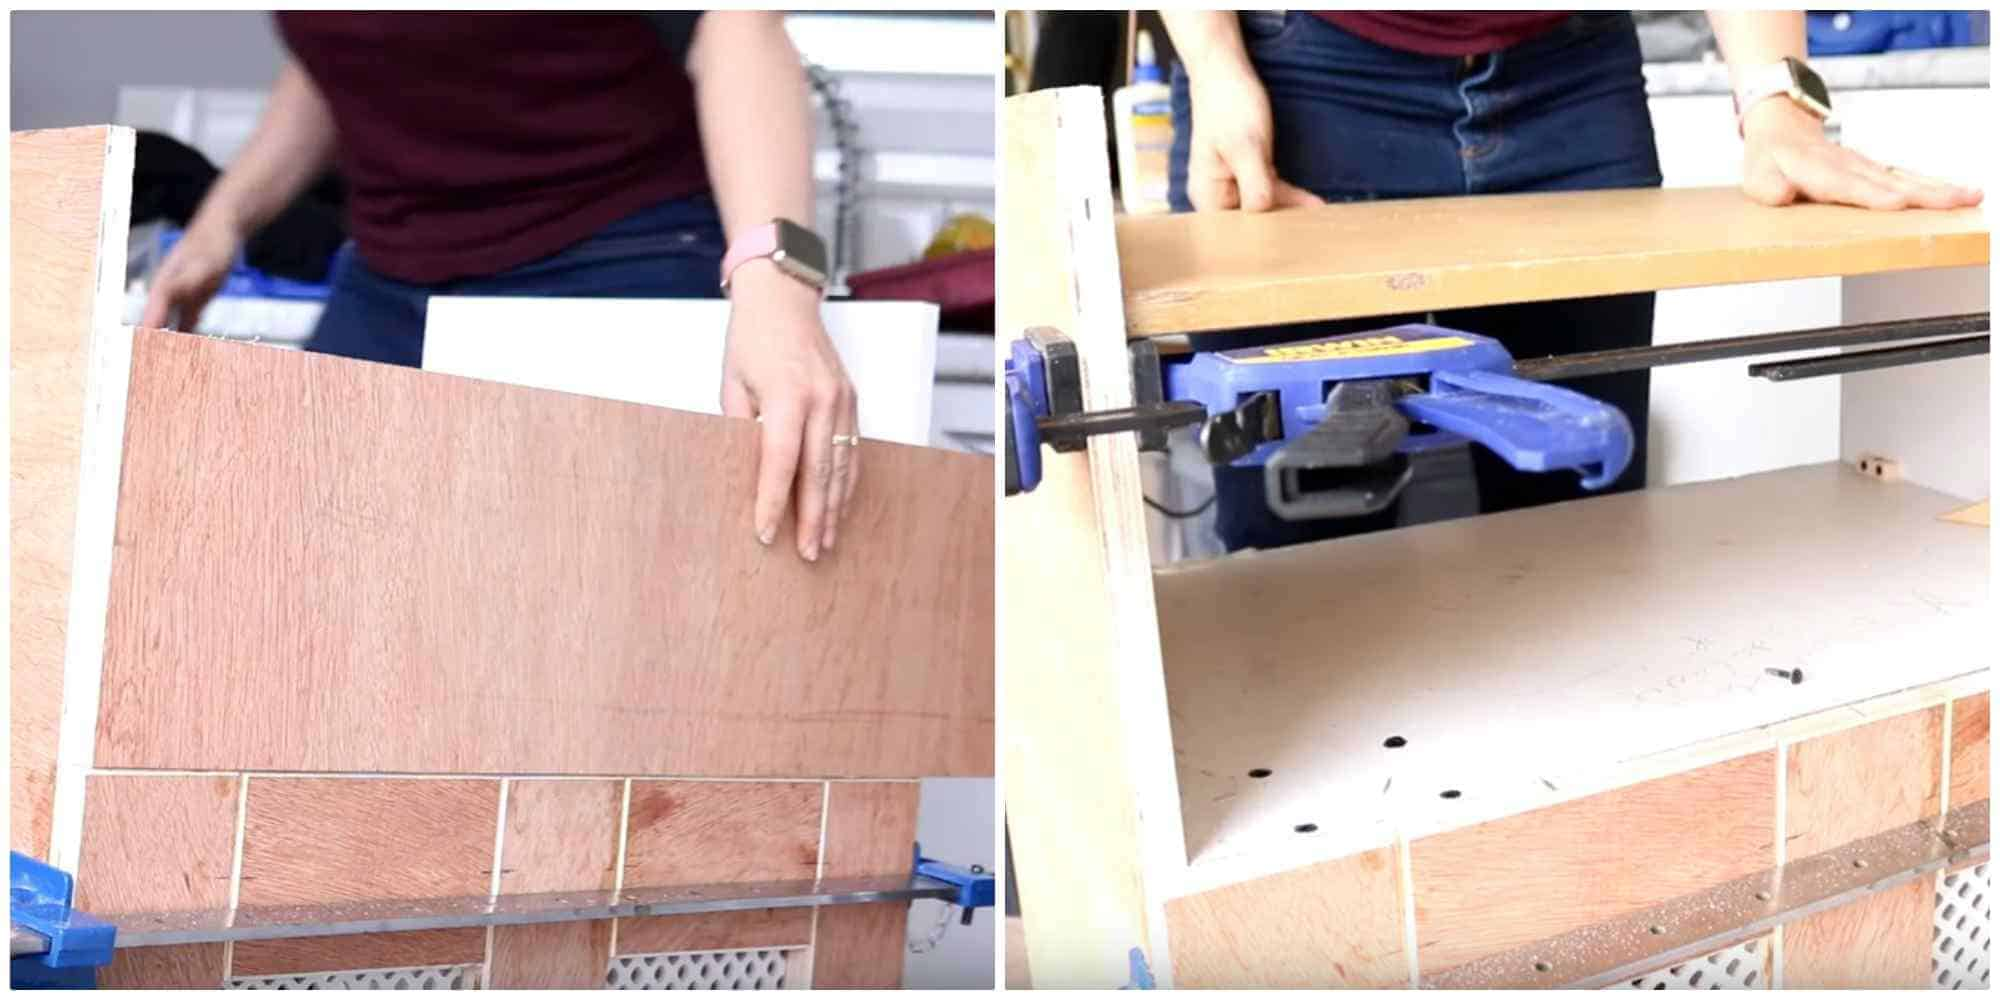 planning where to position recycling bin storage shelf and using clamps to prop it up